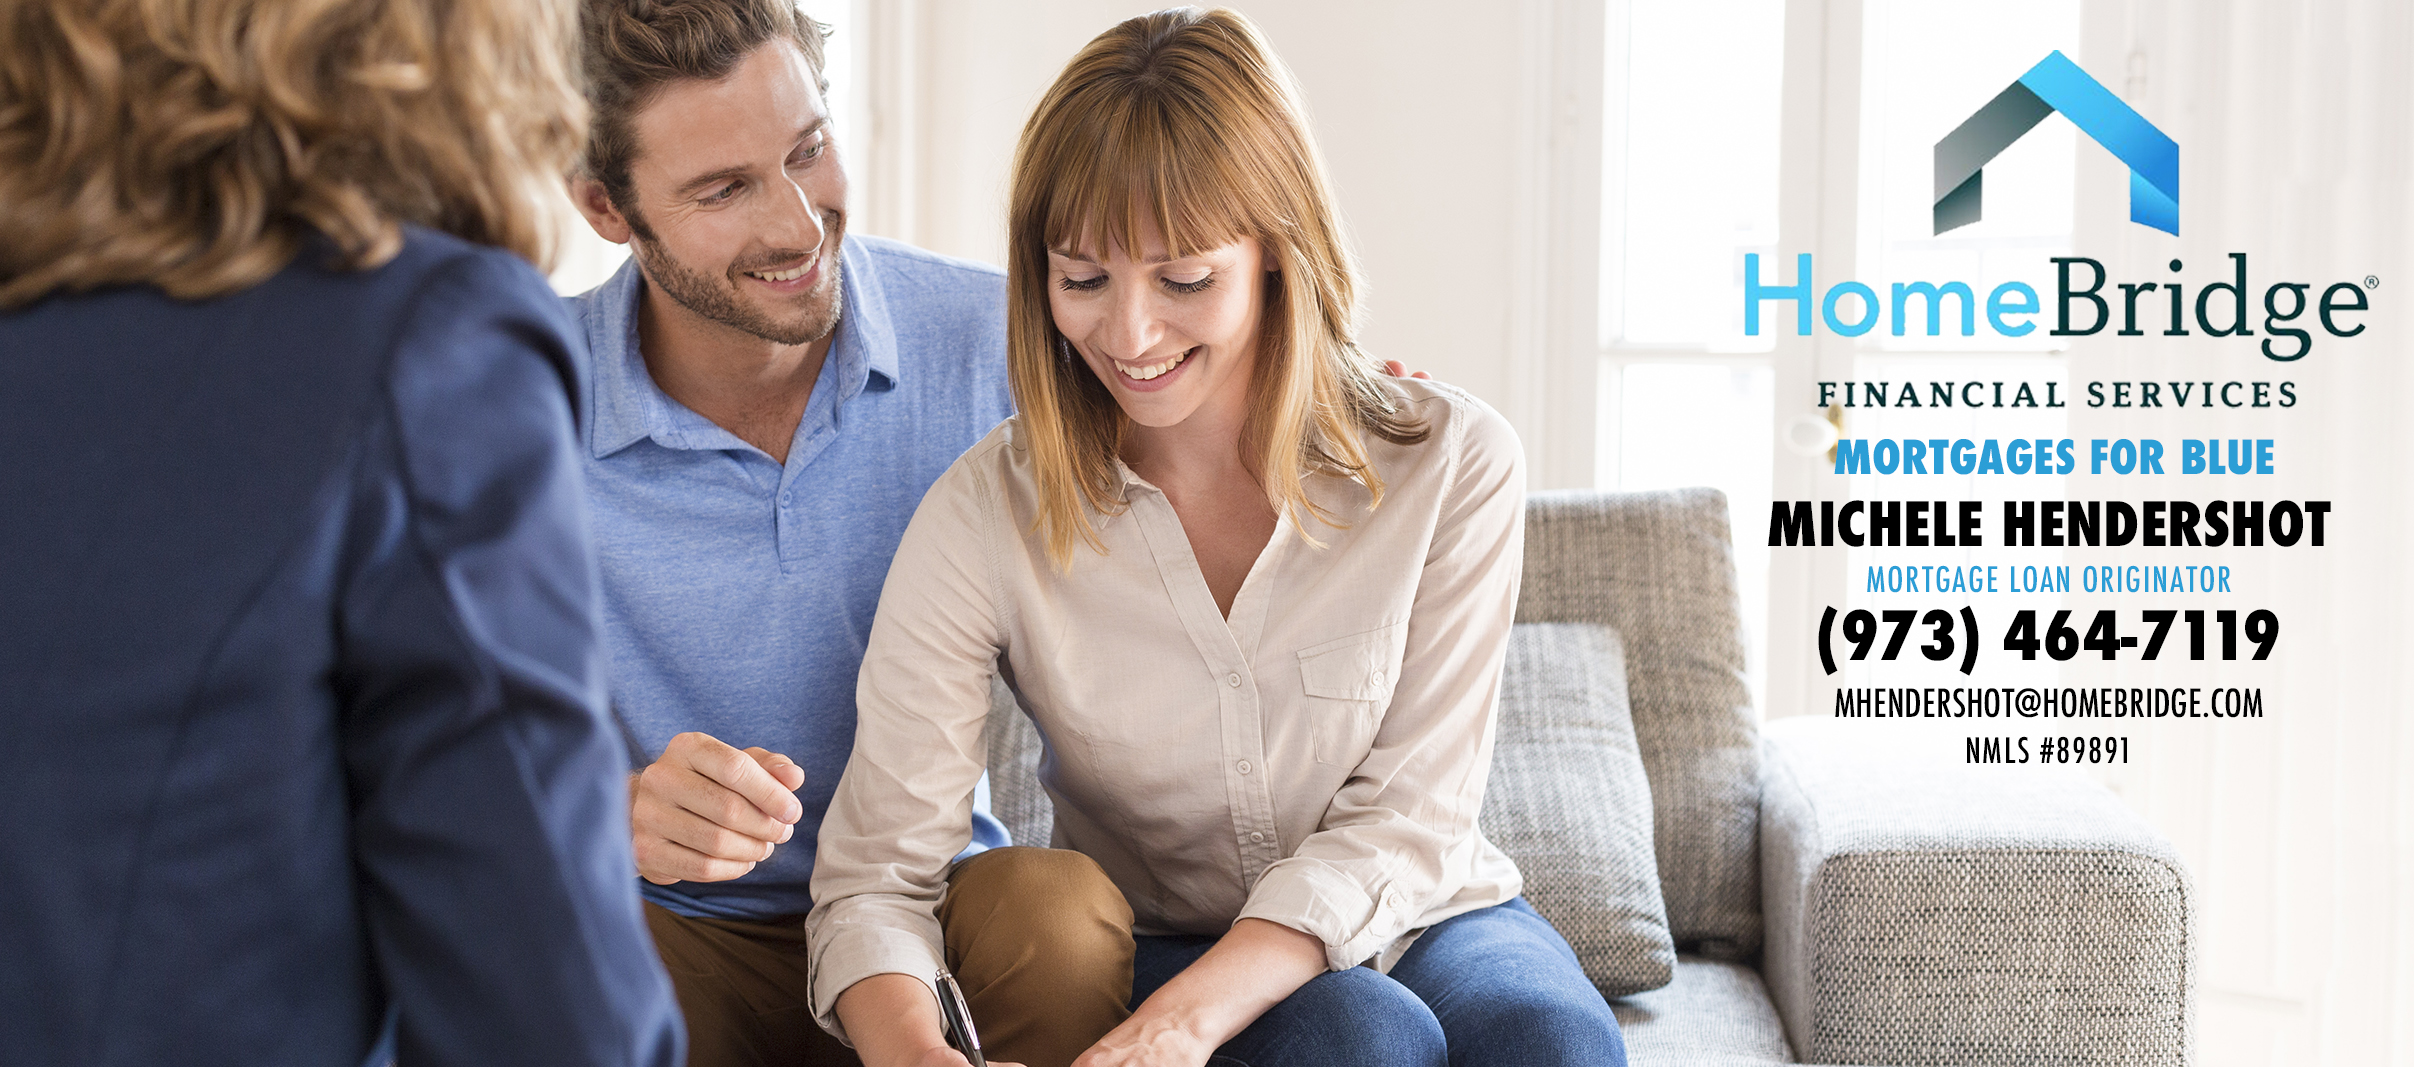 Homebridge Full Banner Ad.jpg